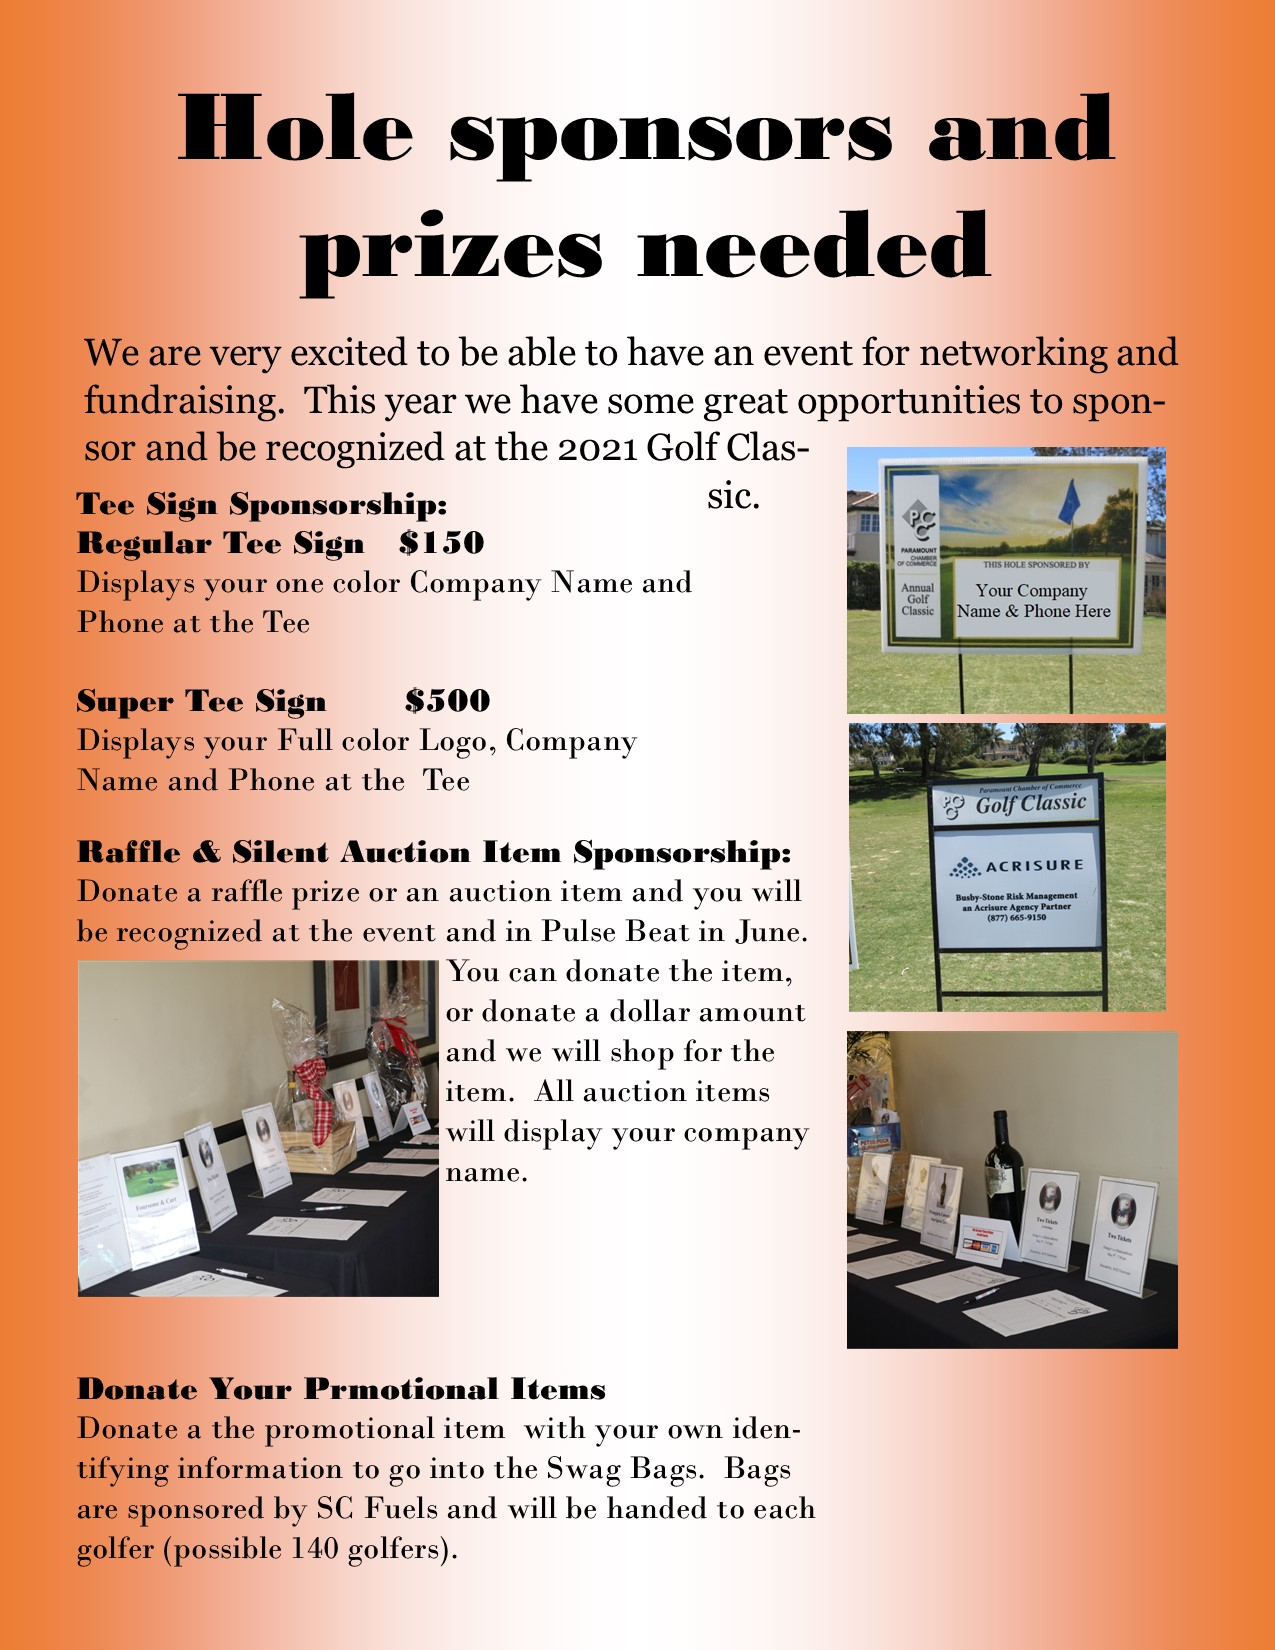 Request for prizes